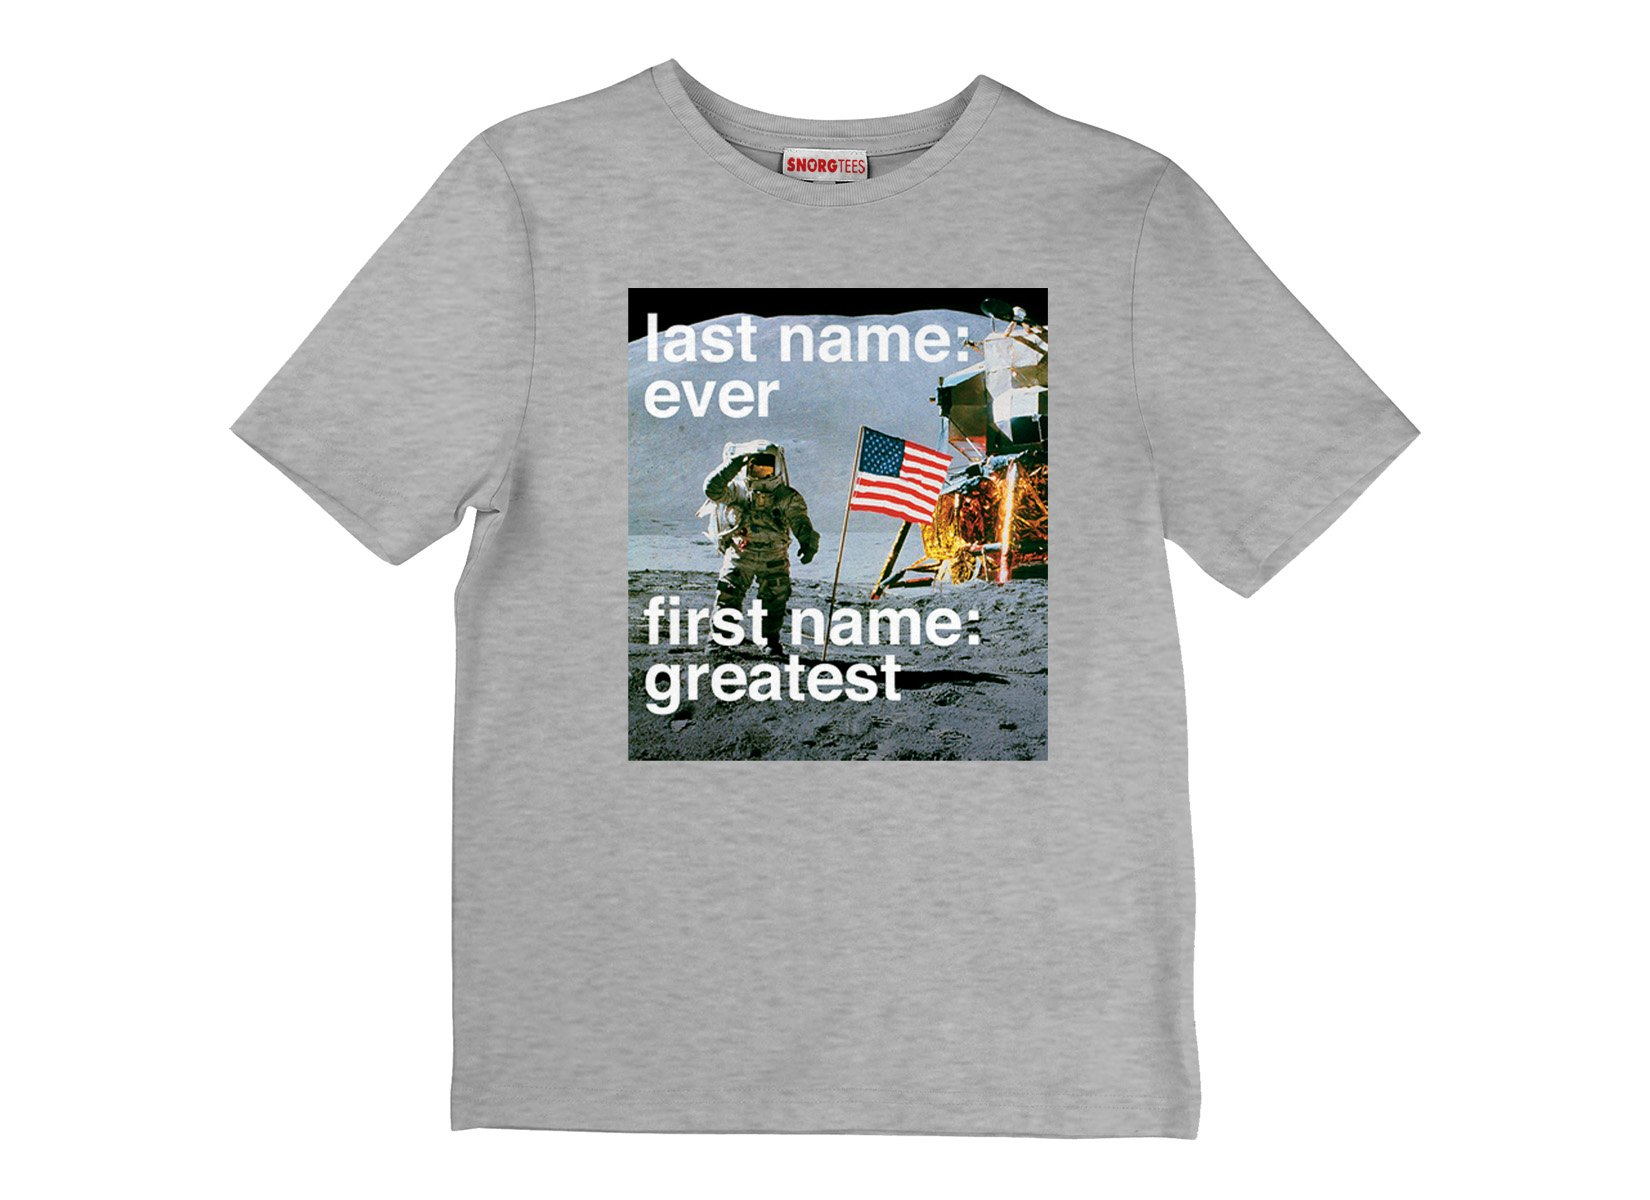 Last Name: Ever, First Name: Greatest on Kids T-Shirt